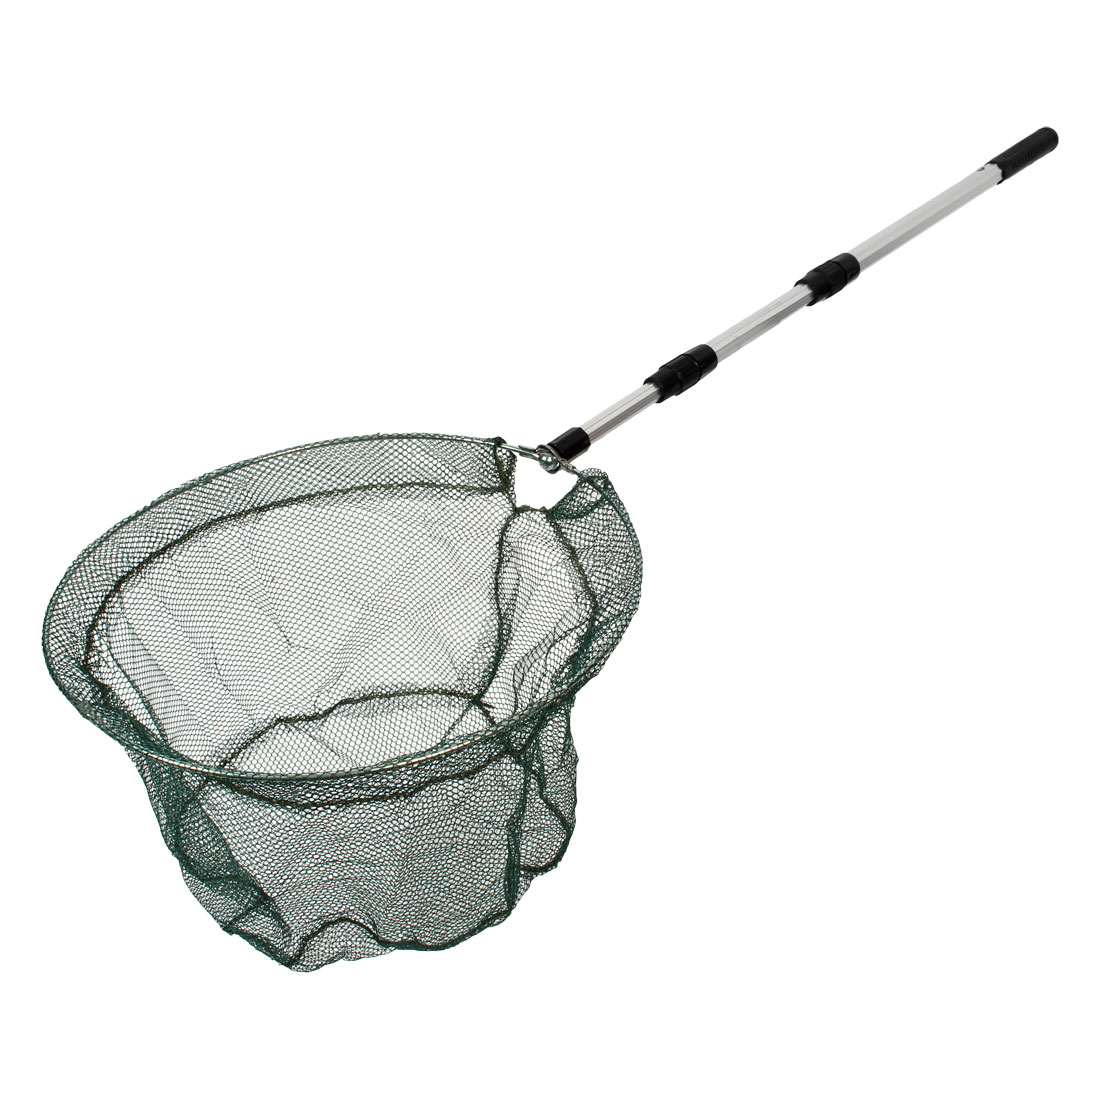 Silver Tone Nonslip Telescopic Handle Fish Landing Net